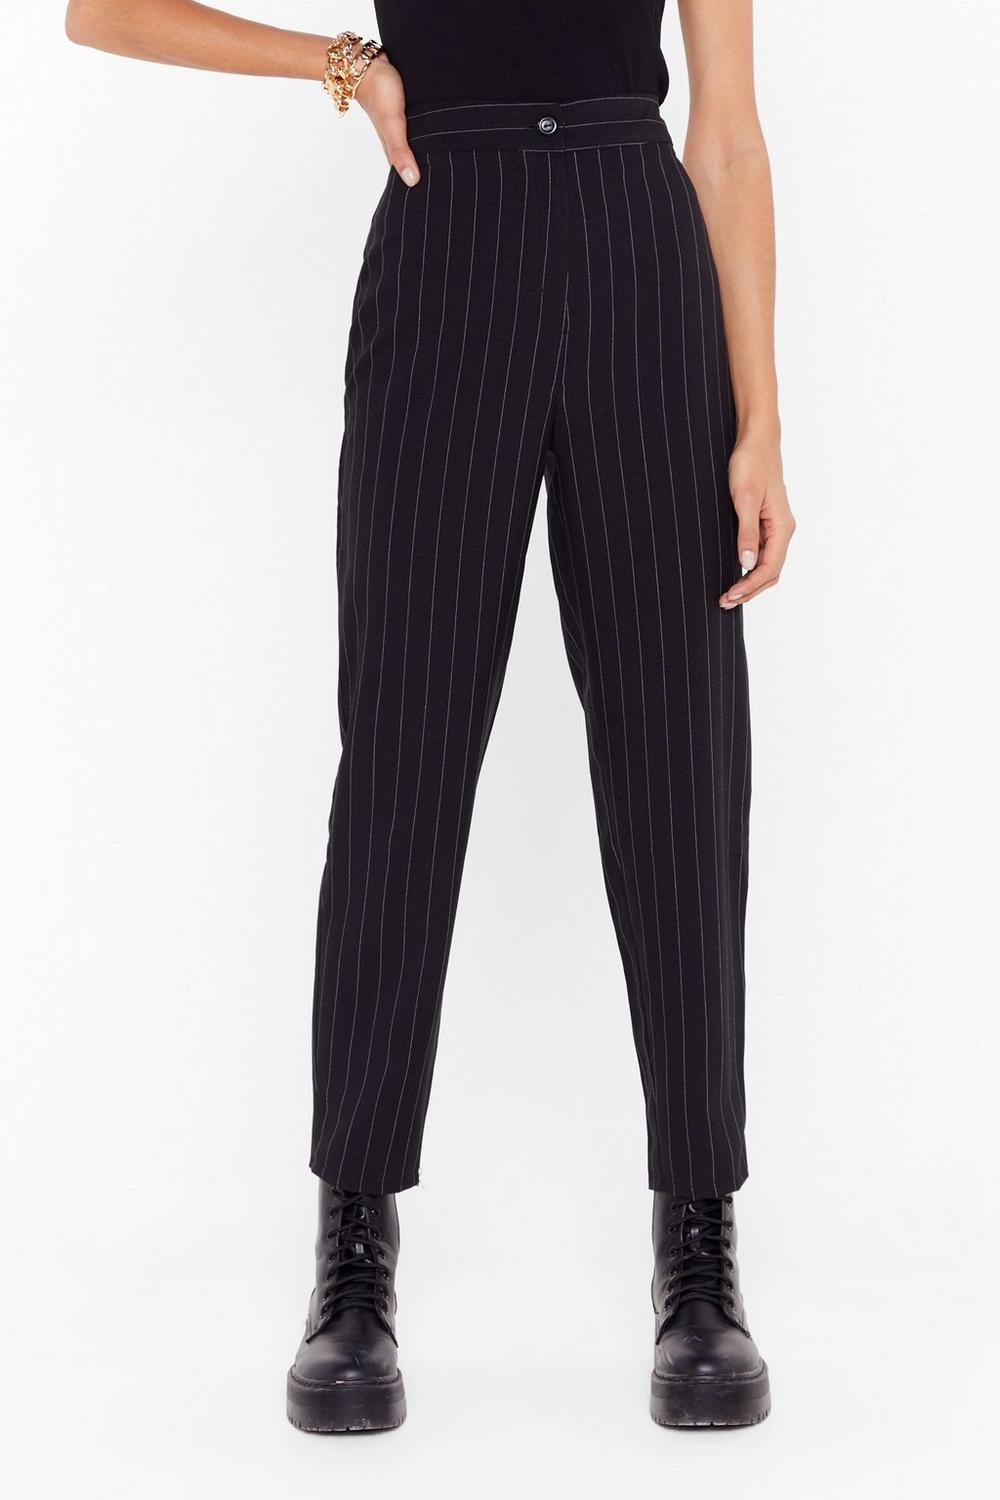 46bf6489a2c5 Put a Pinstripe in That Tapered Trousers | Shop Clothes at Nasty Gal!